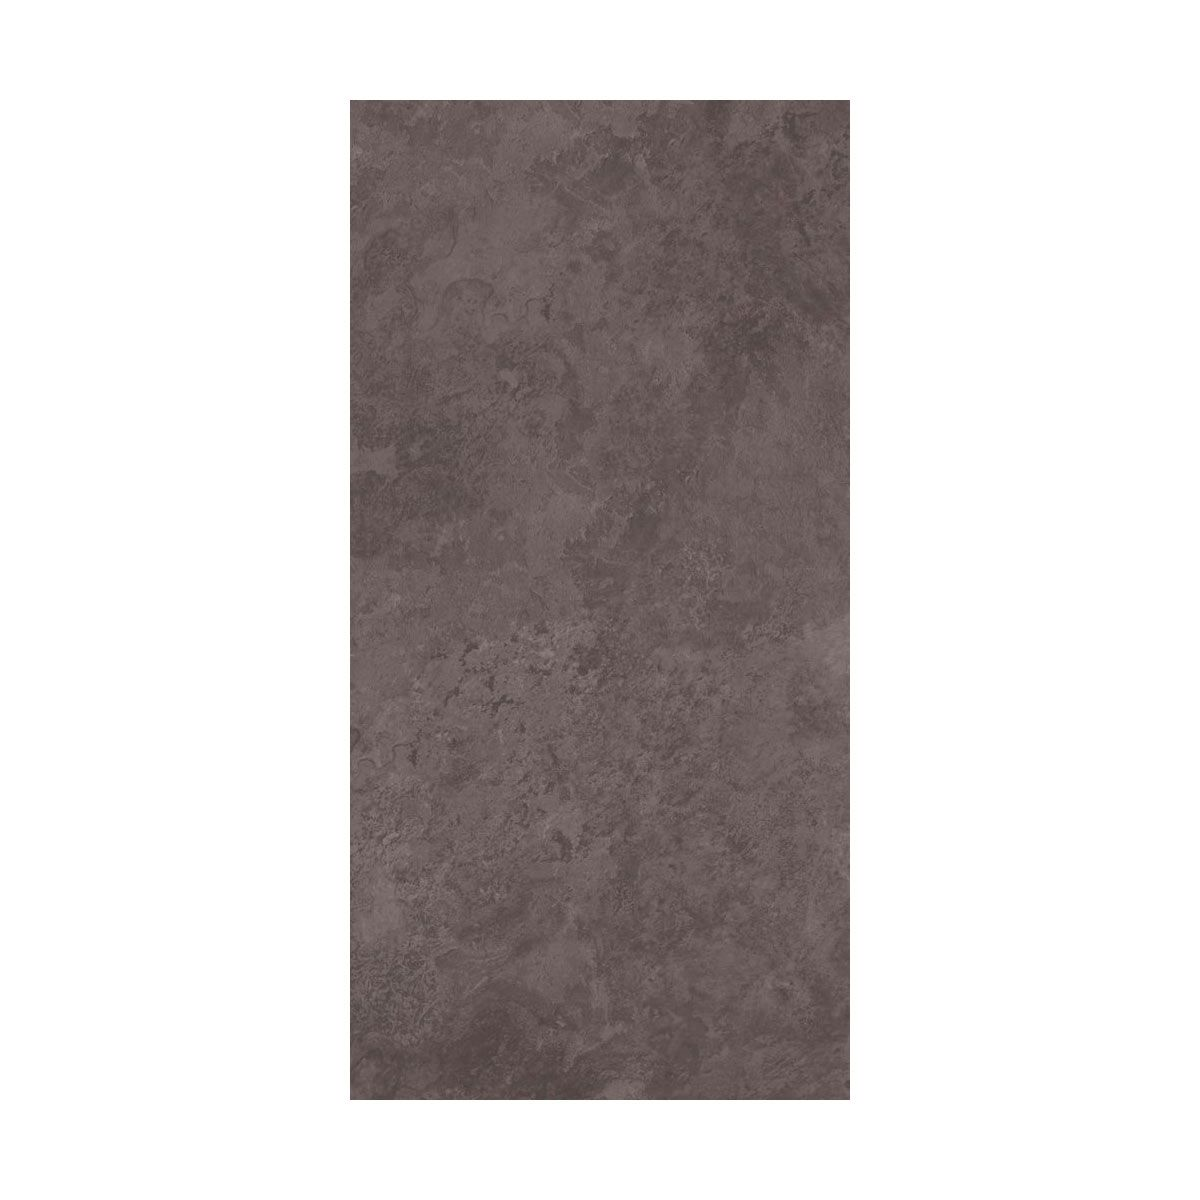 British ceramic tile slate dark riven grey matt tile 248mm x 498mm with a stunning dark slate colouring these rectangular wall tiles will provide a sophisticated style for your bathroom or just about any other room you dailygadgetfo Image collections